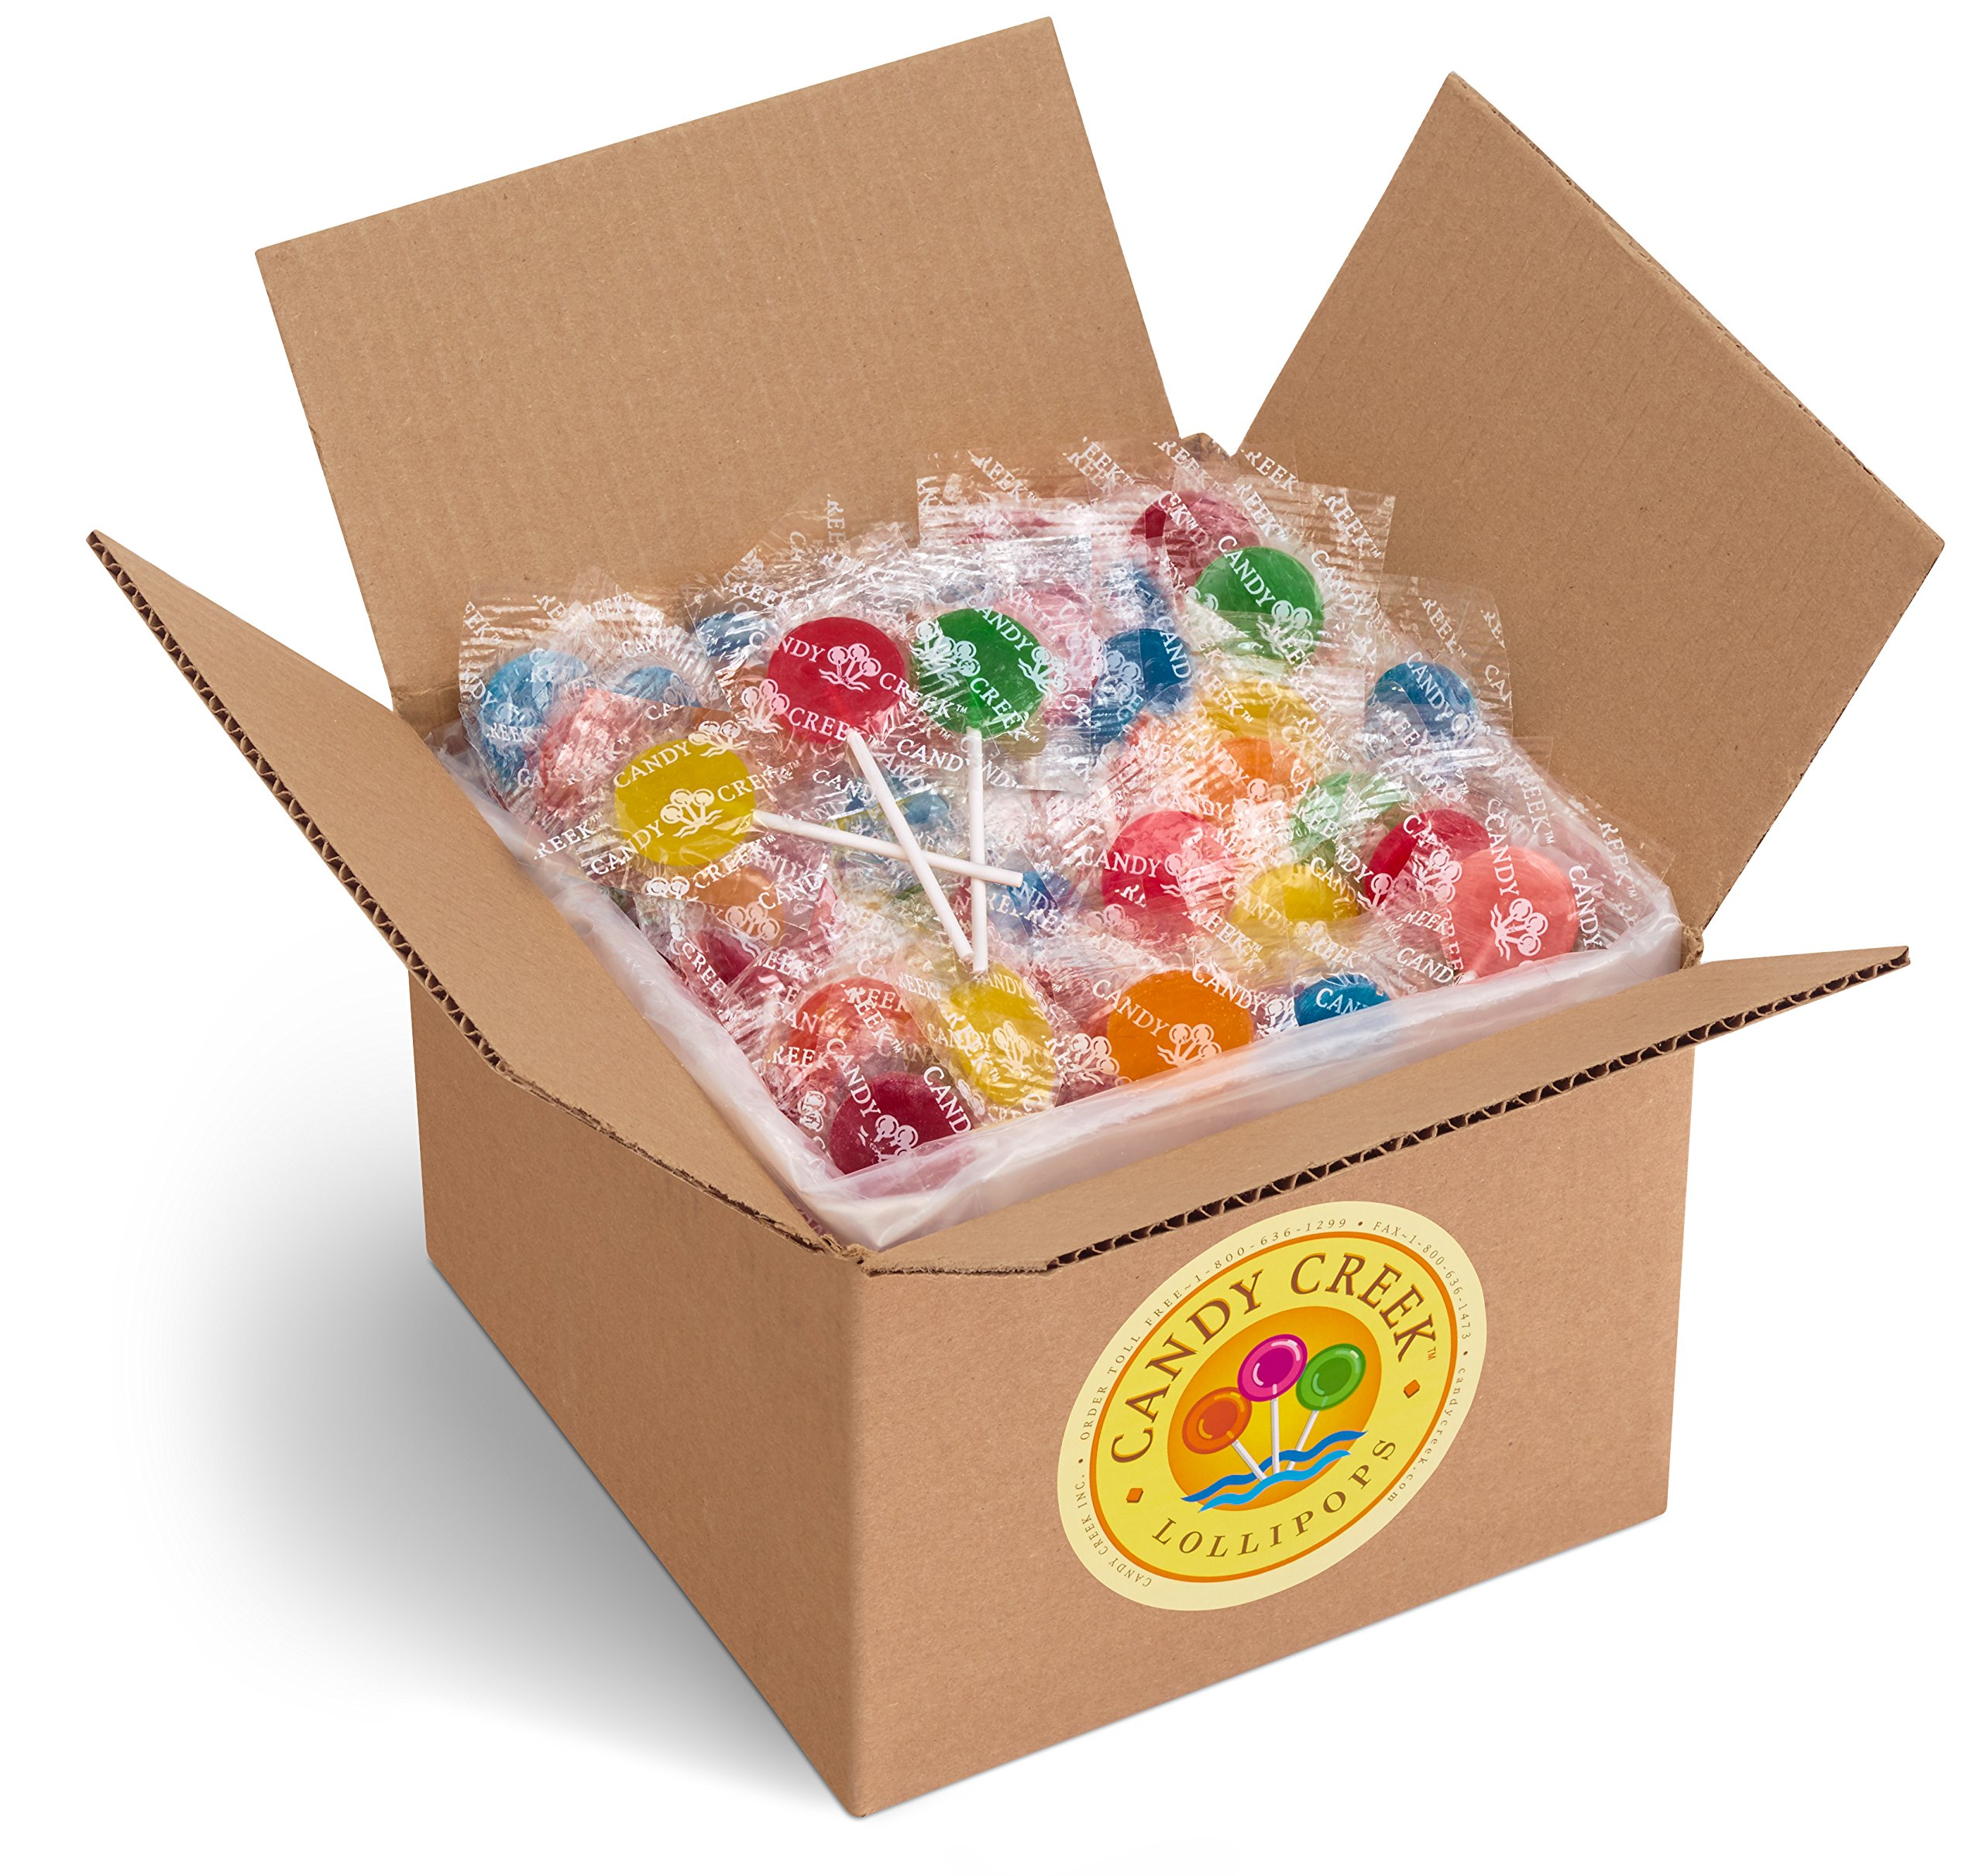 Candy Creek Fruit Lollipops, 5 Pound Carton, Bulk Candy, Assorted Flavors by Candy Creek Lollipops